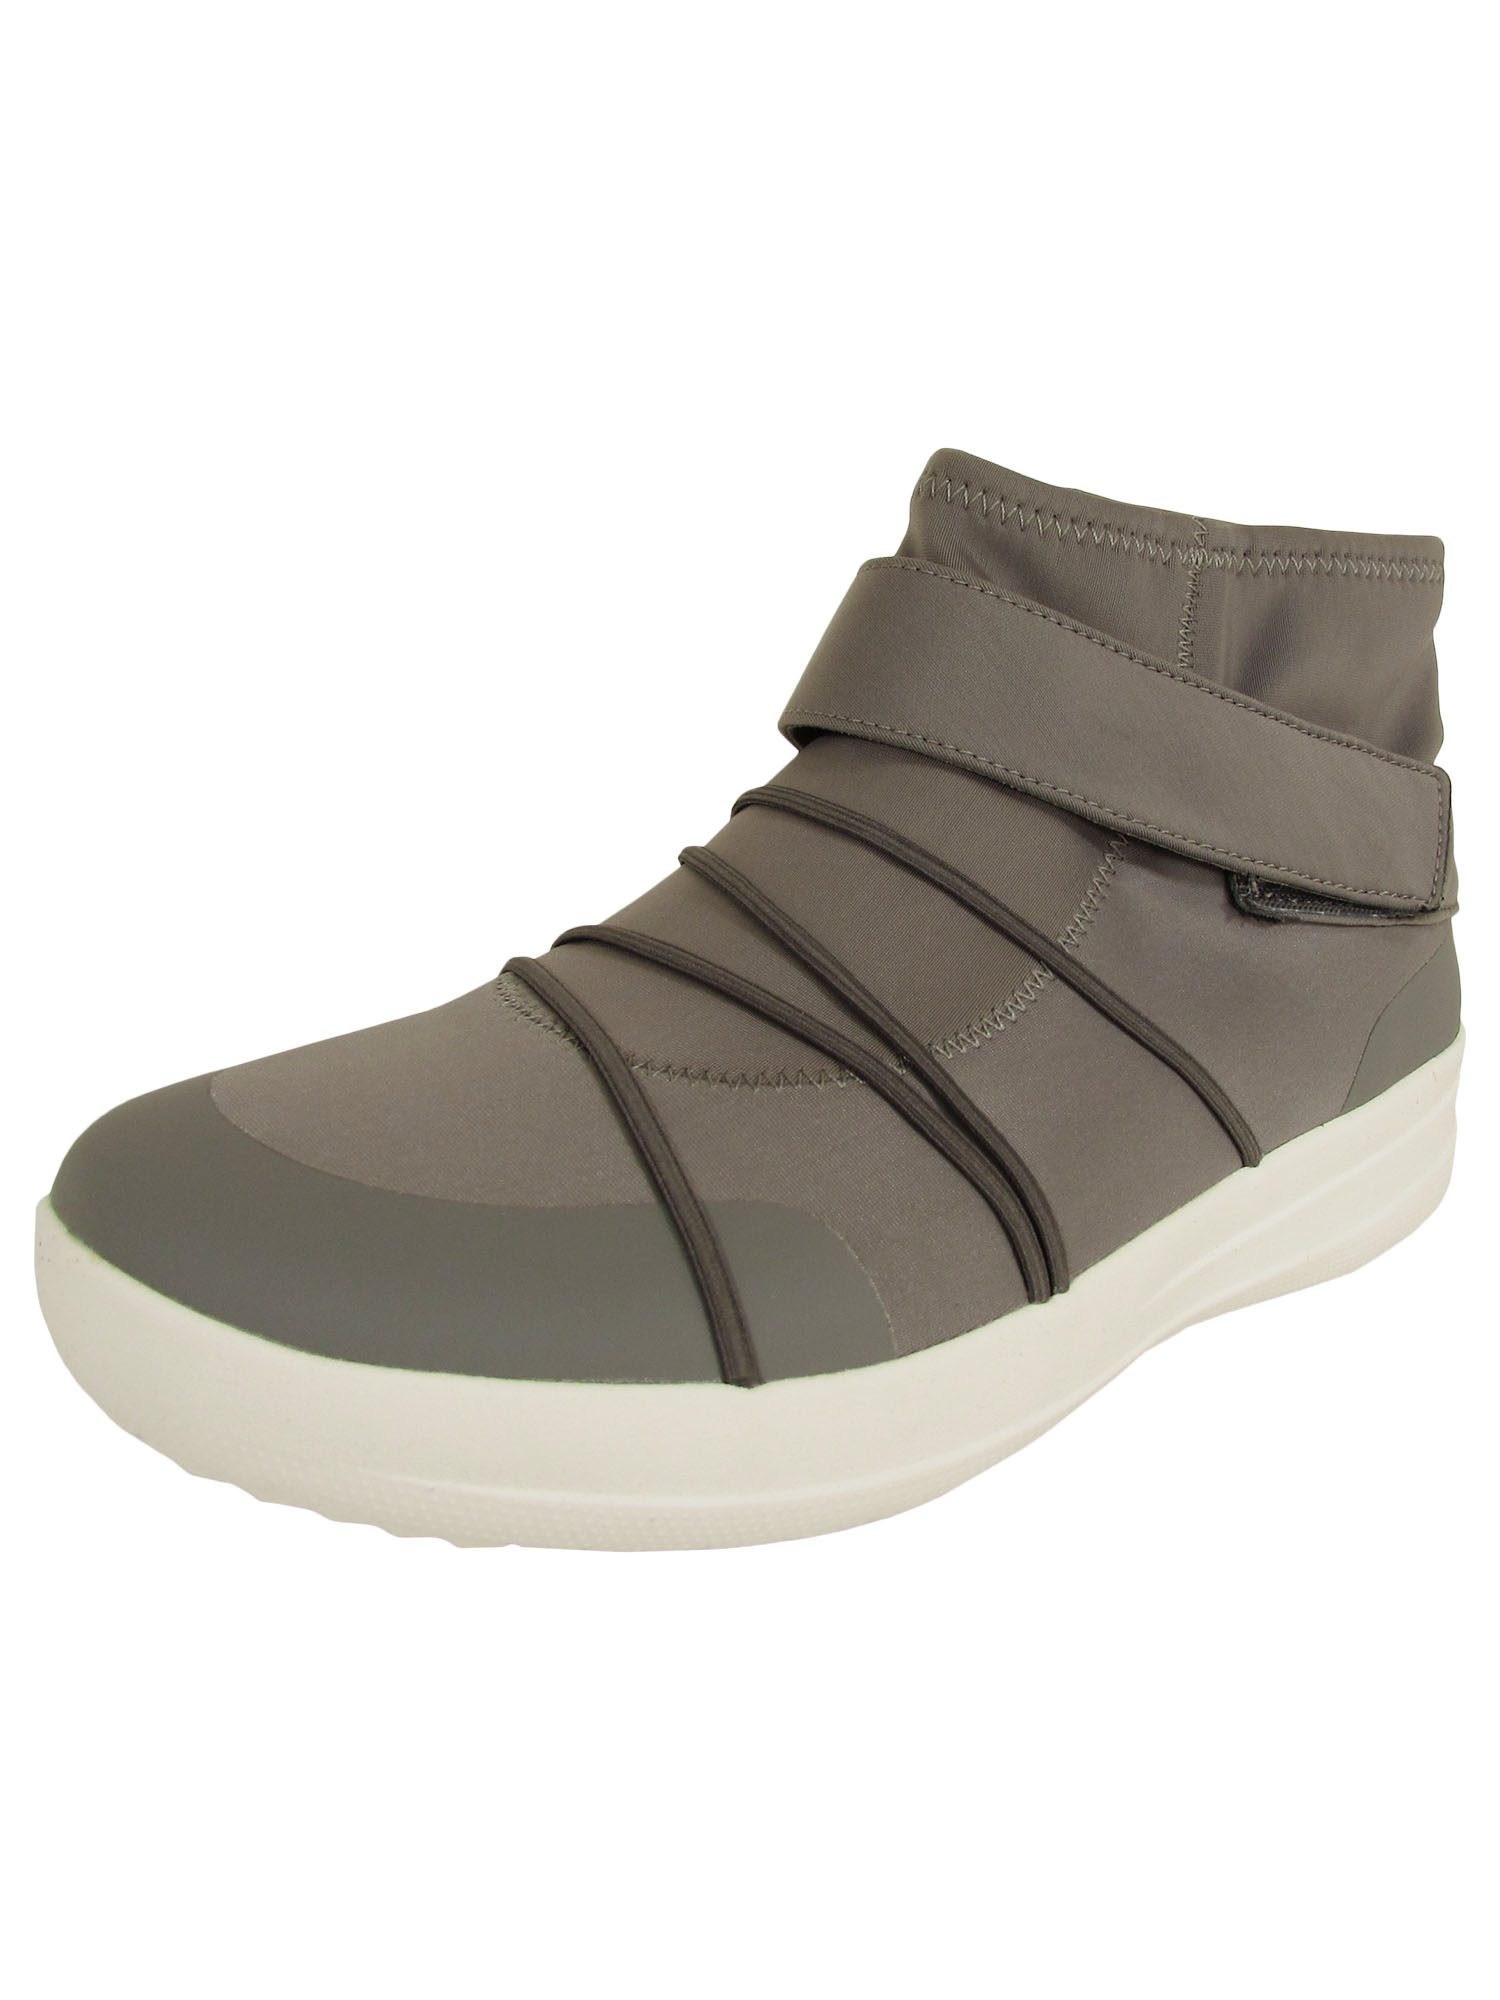 fitflop high top sneakers womens